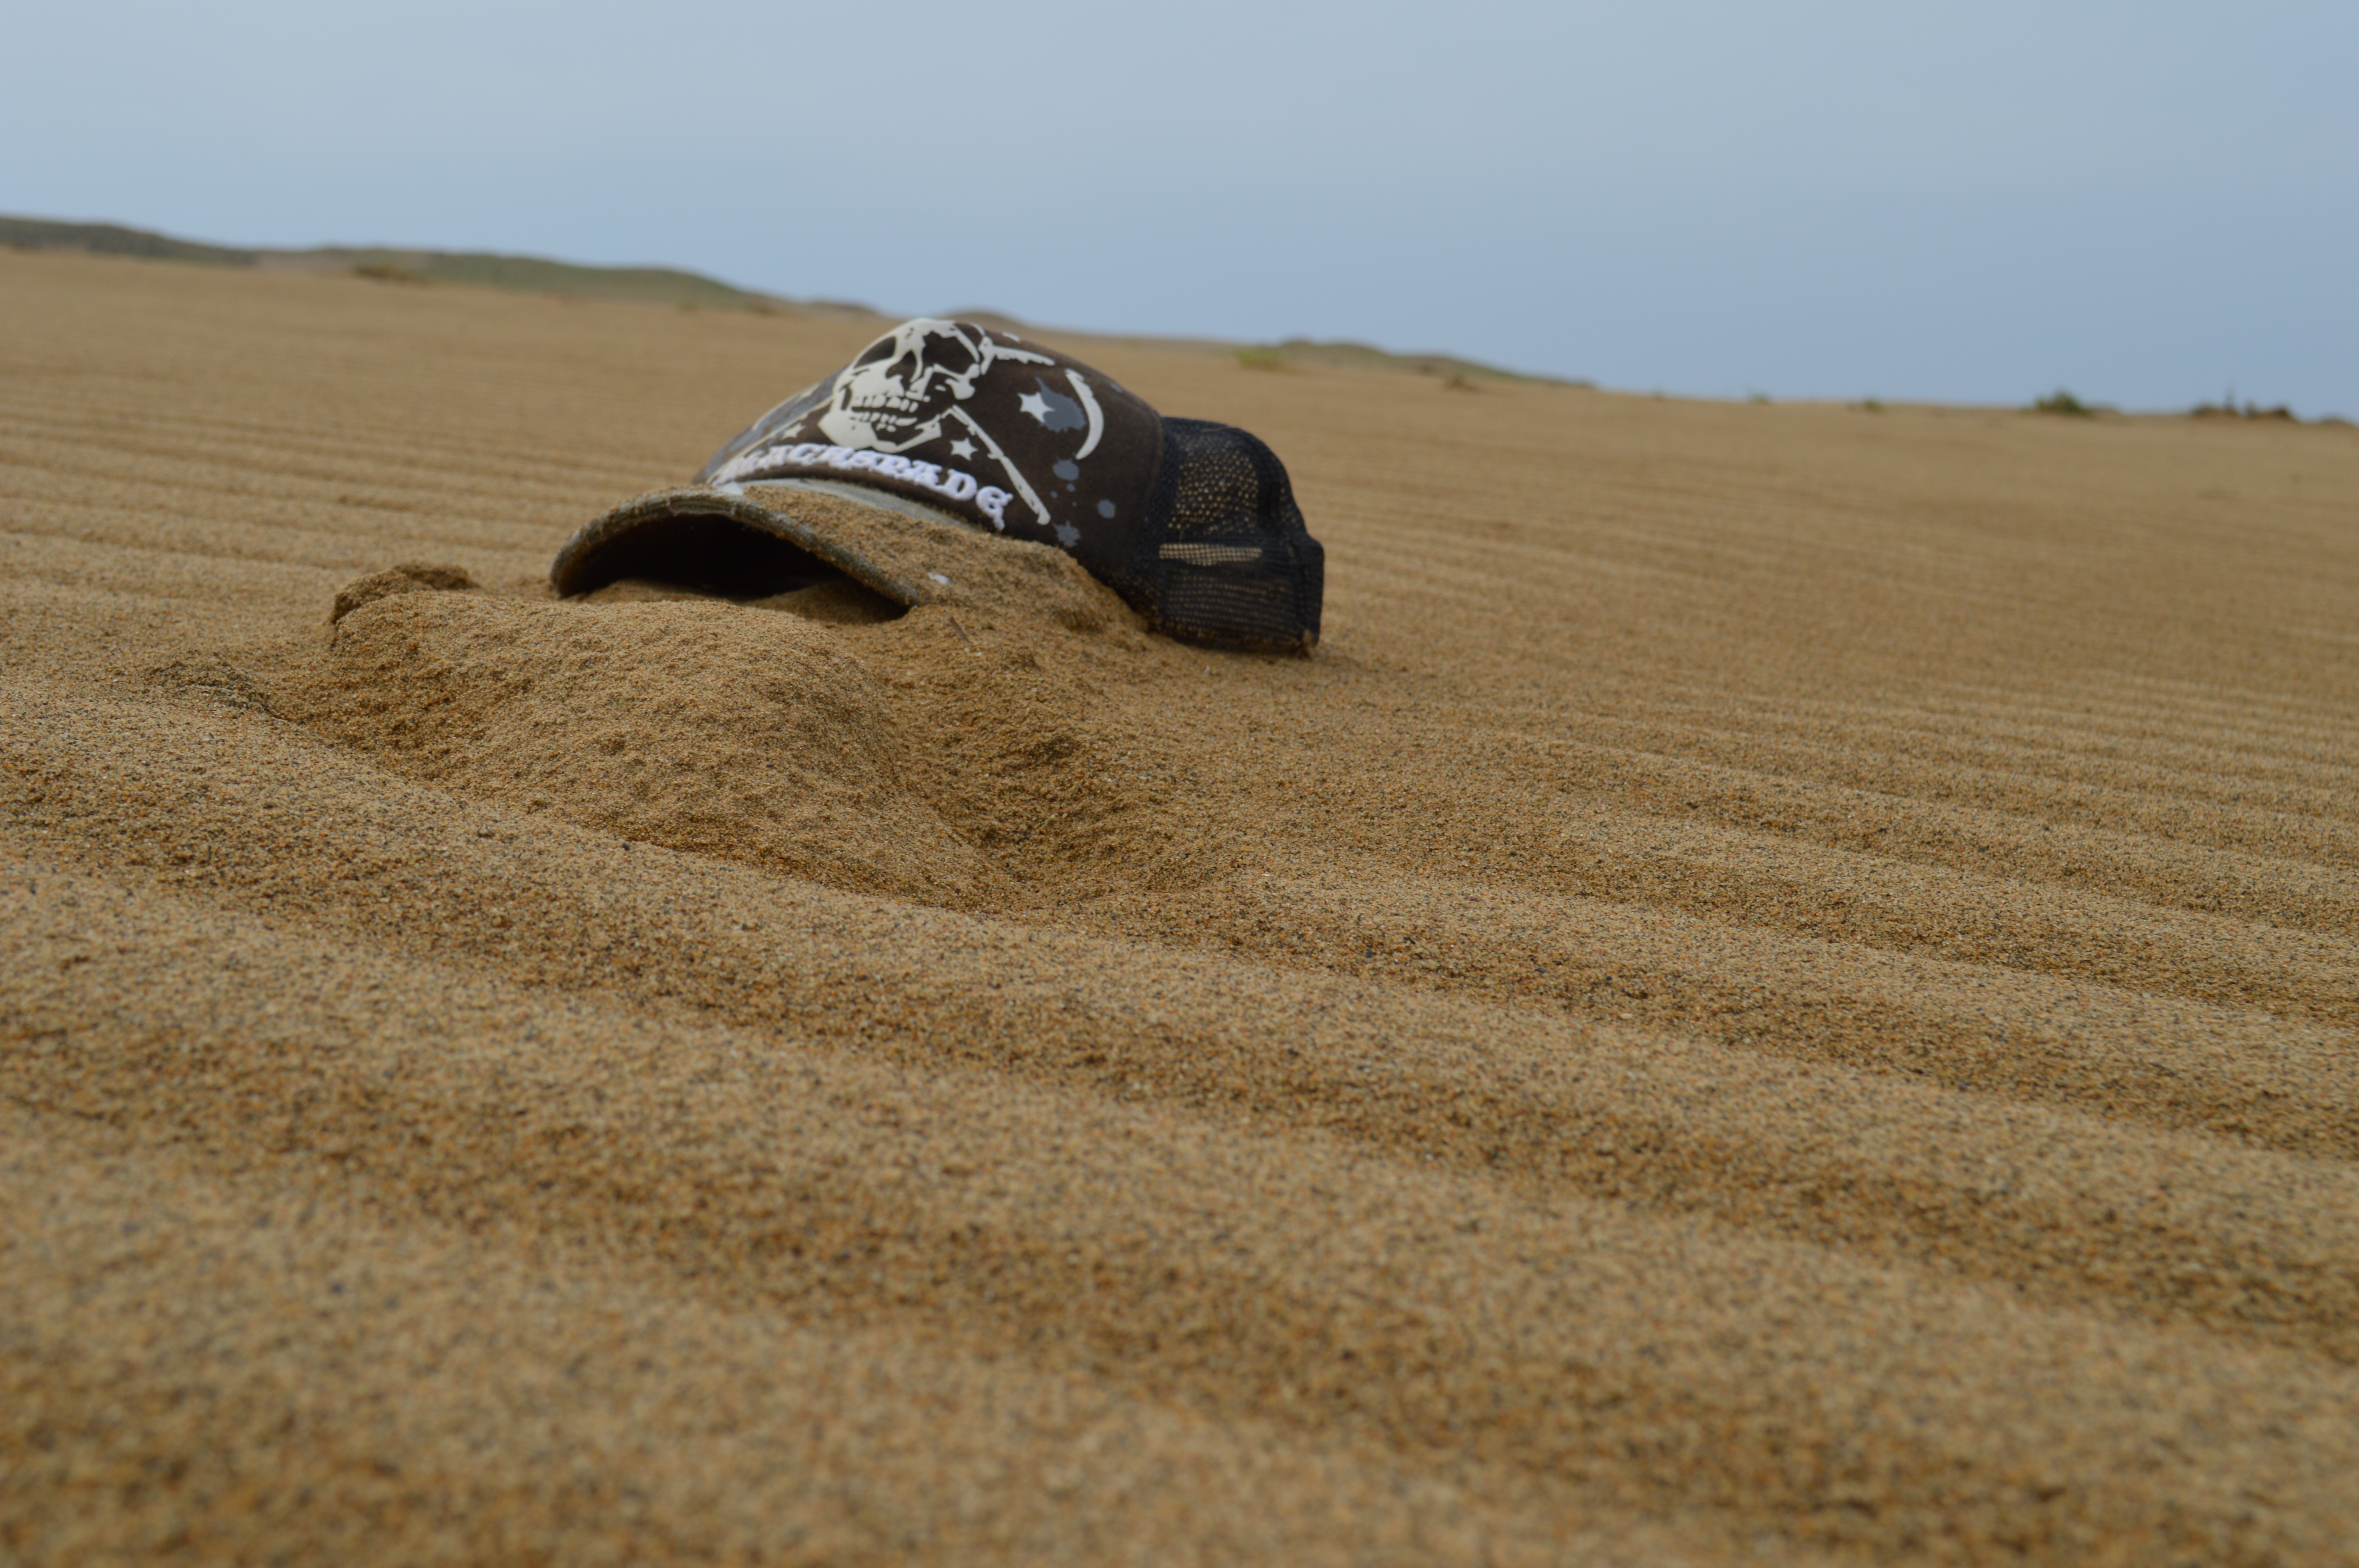 real star wars planet in japan the tottori sand dunes barefootglobal